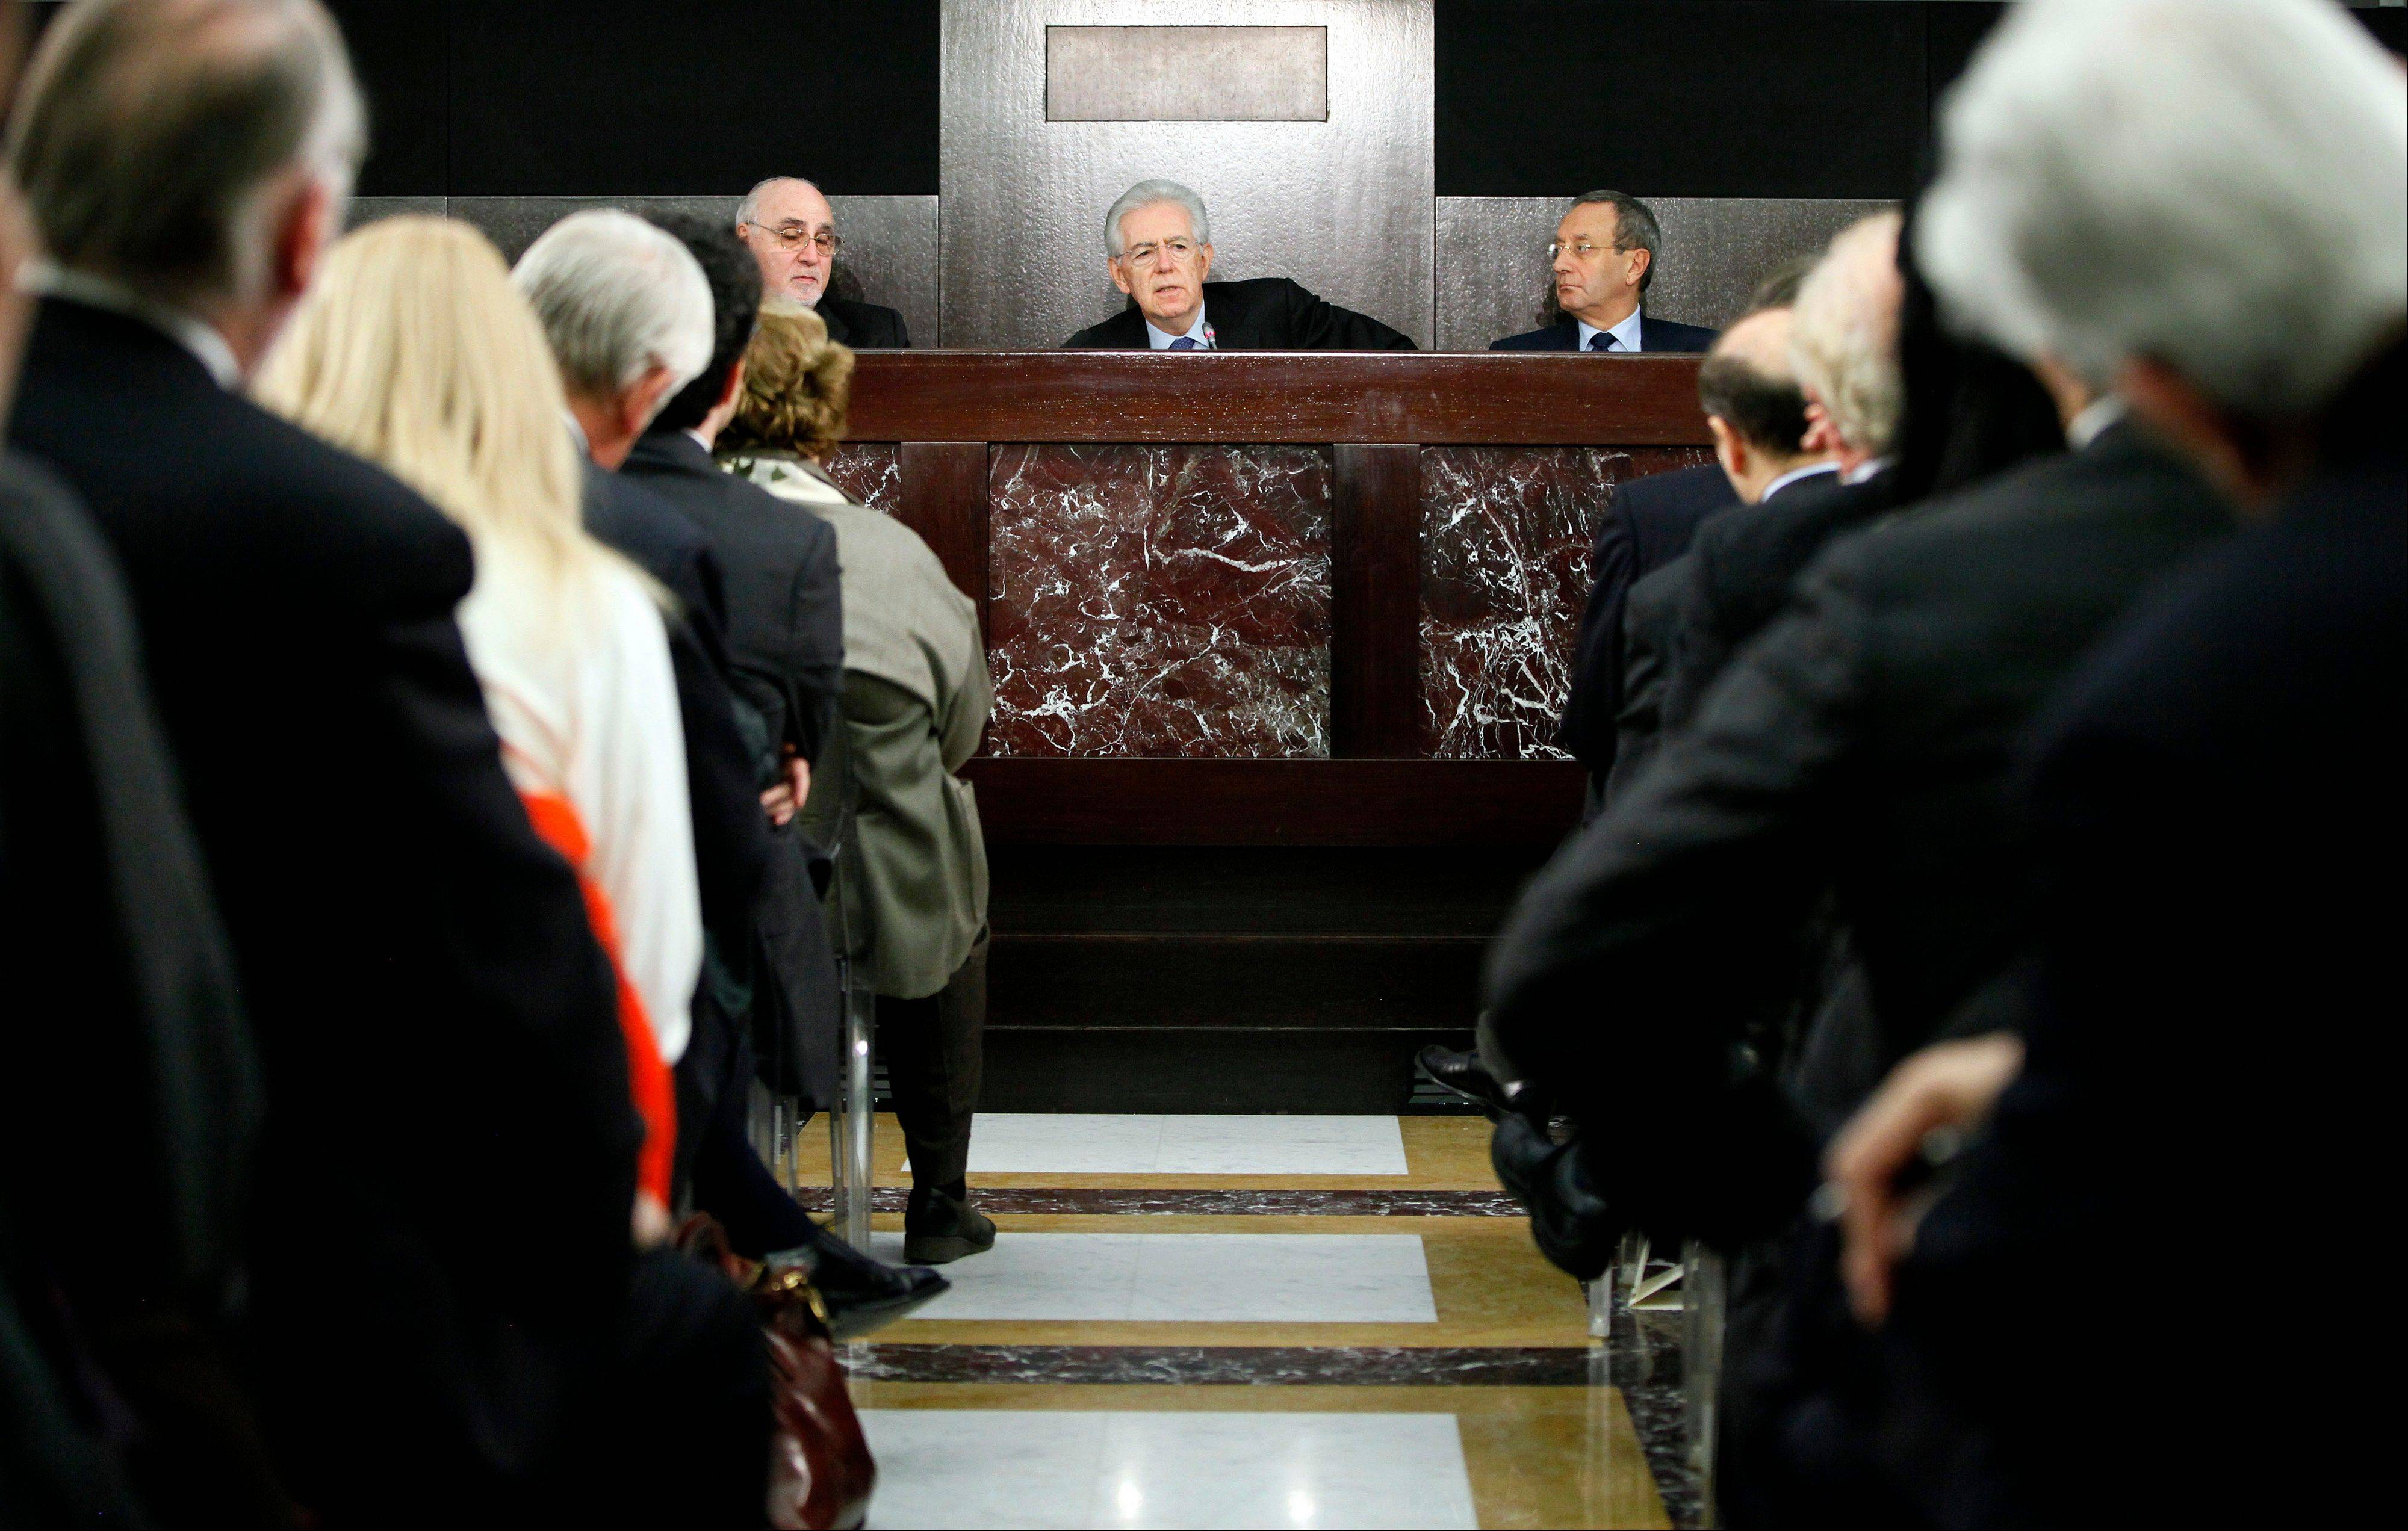 Mario Monti, Italy�s prime minister, center, speaks during his end-of-year news conference in Rome, Italy, on Sunday, Dec. 23, 2012. Monti said he won�t run in the country�s next elections, though he would agree to serve again as prime minister if a coalition backing his economic agenda won the vote.